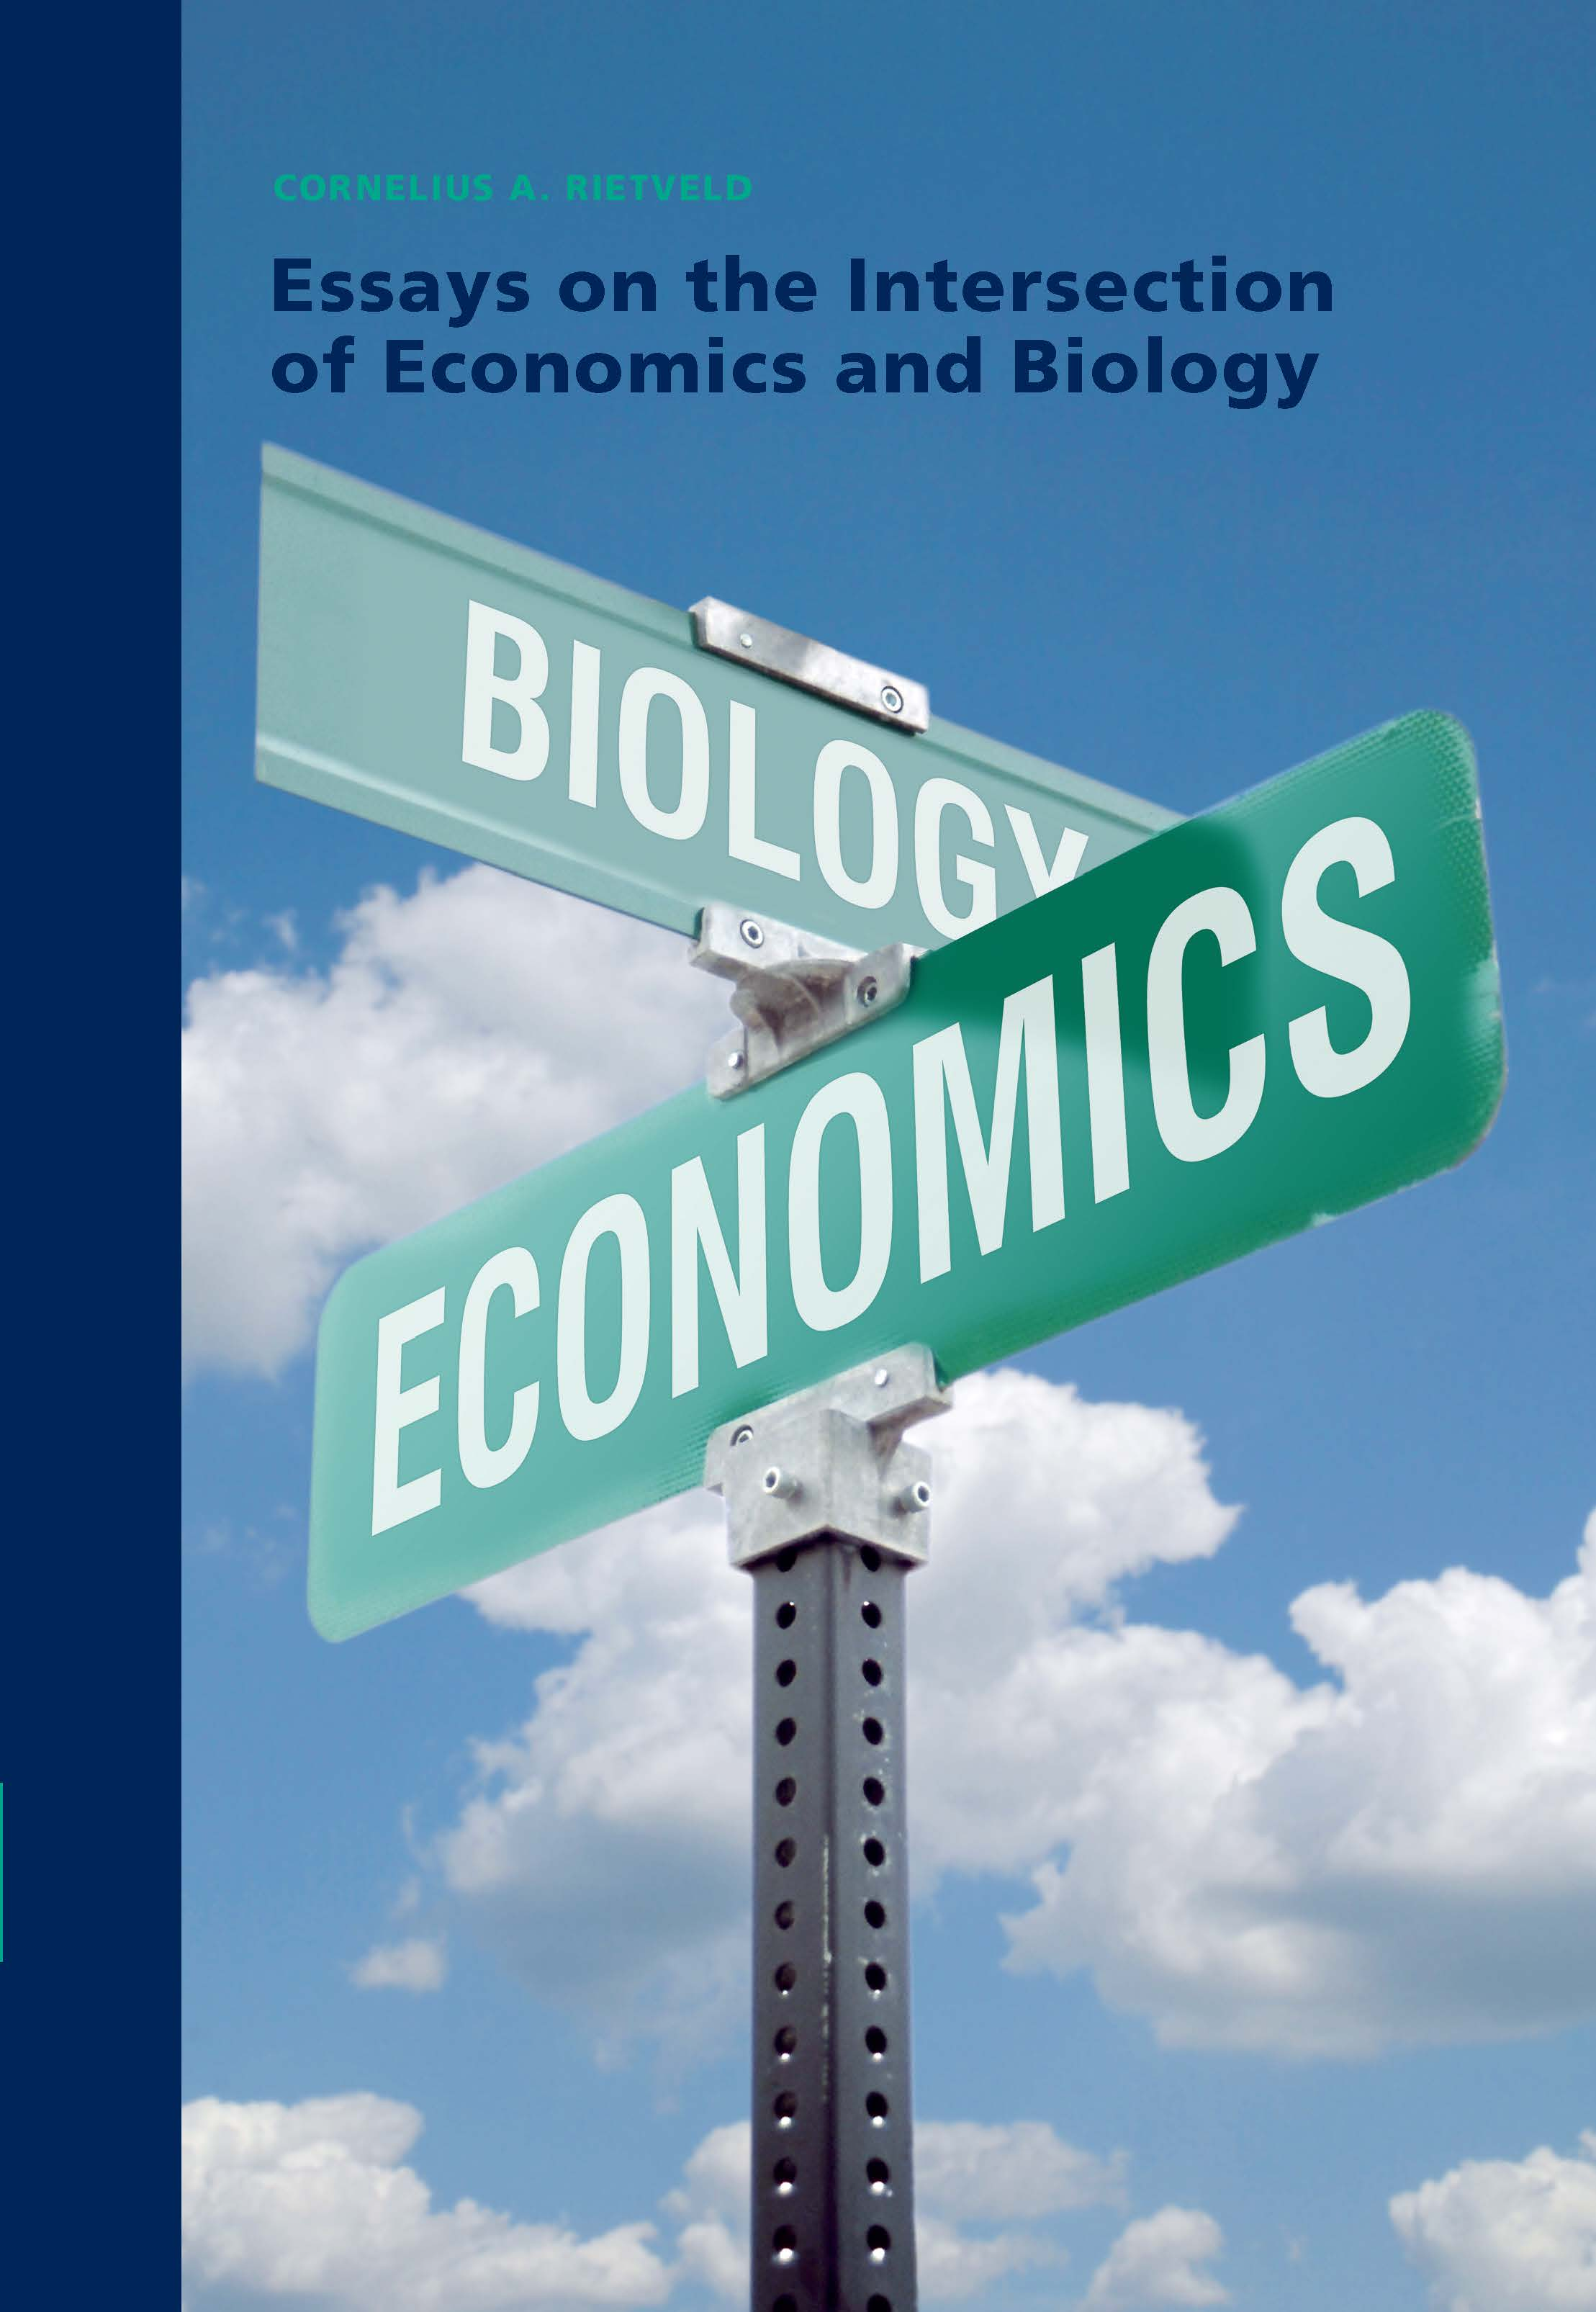 Essays on the Intersection of Economics and Biology